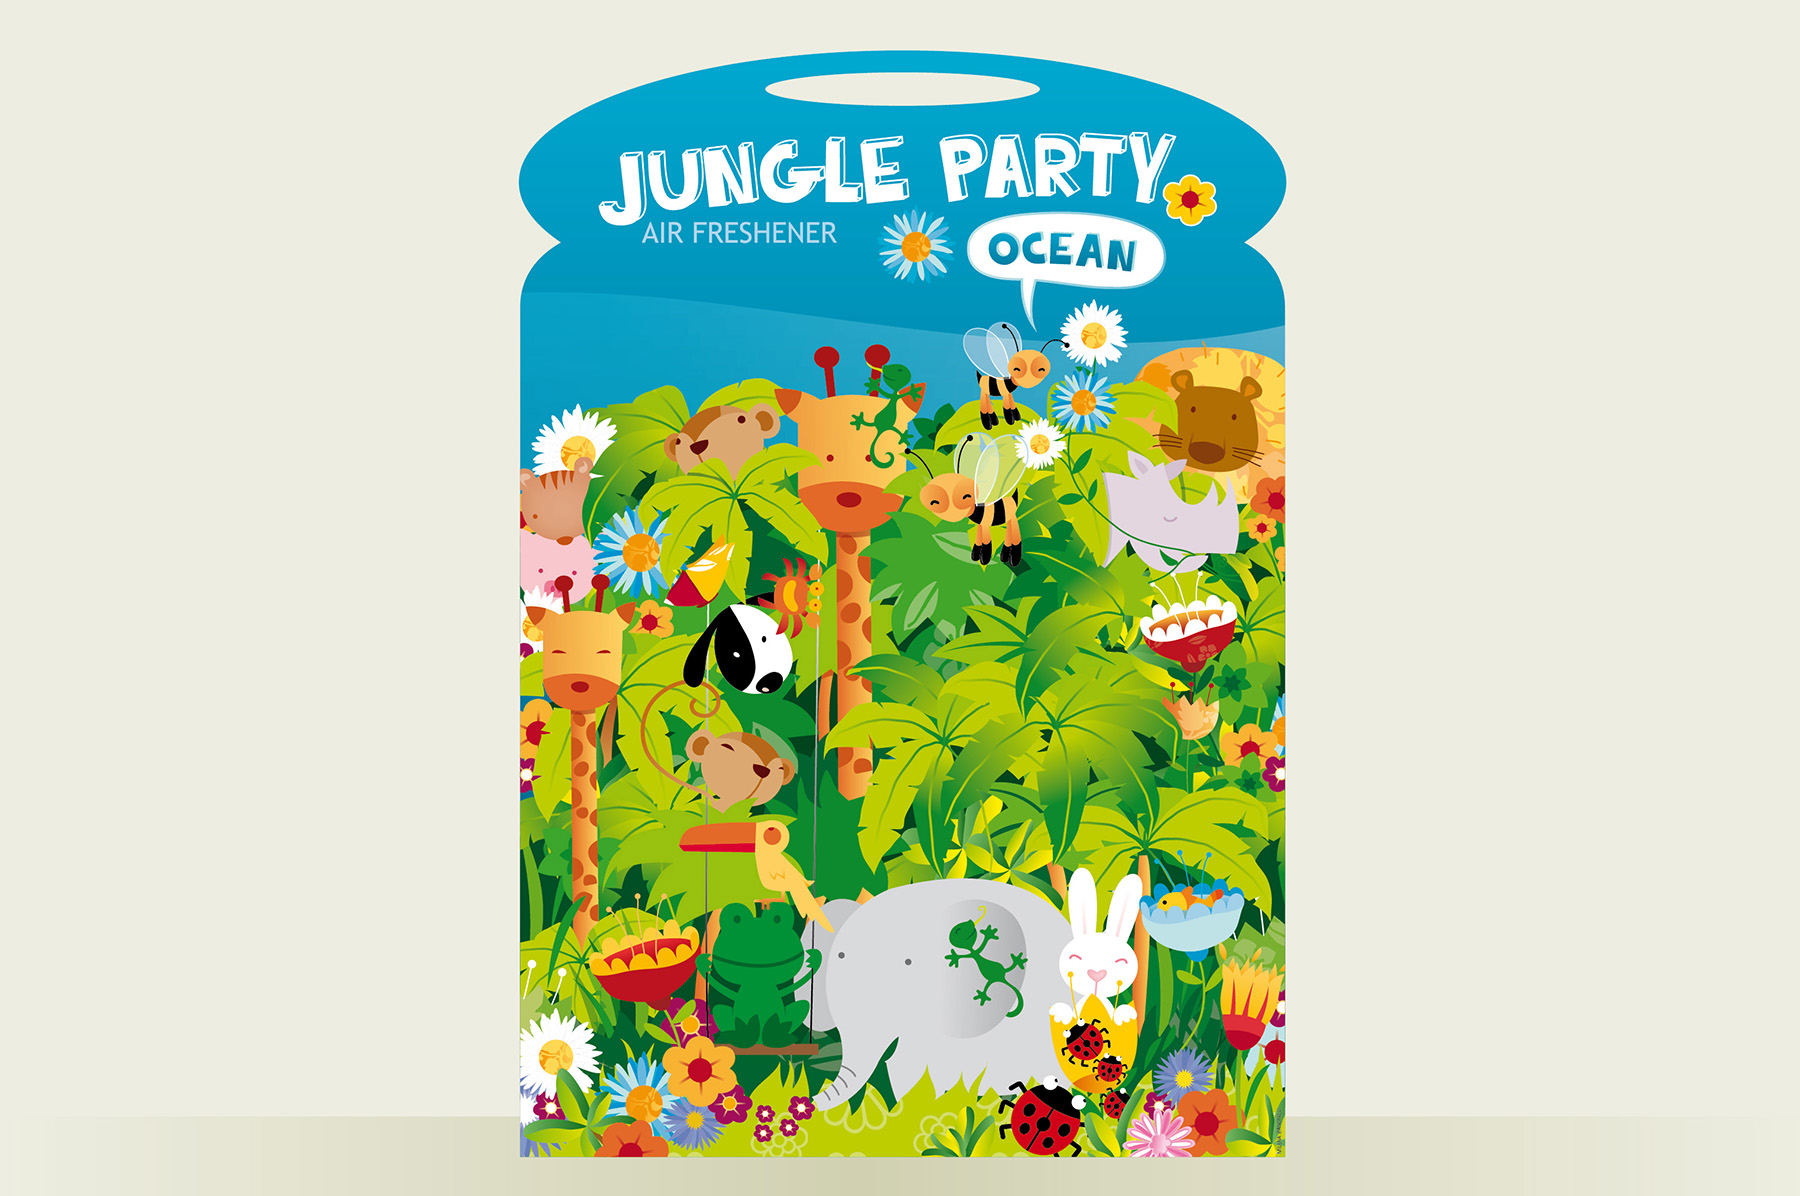 Living in the Jungle Party®